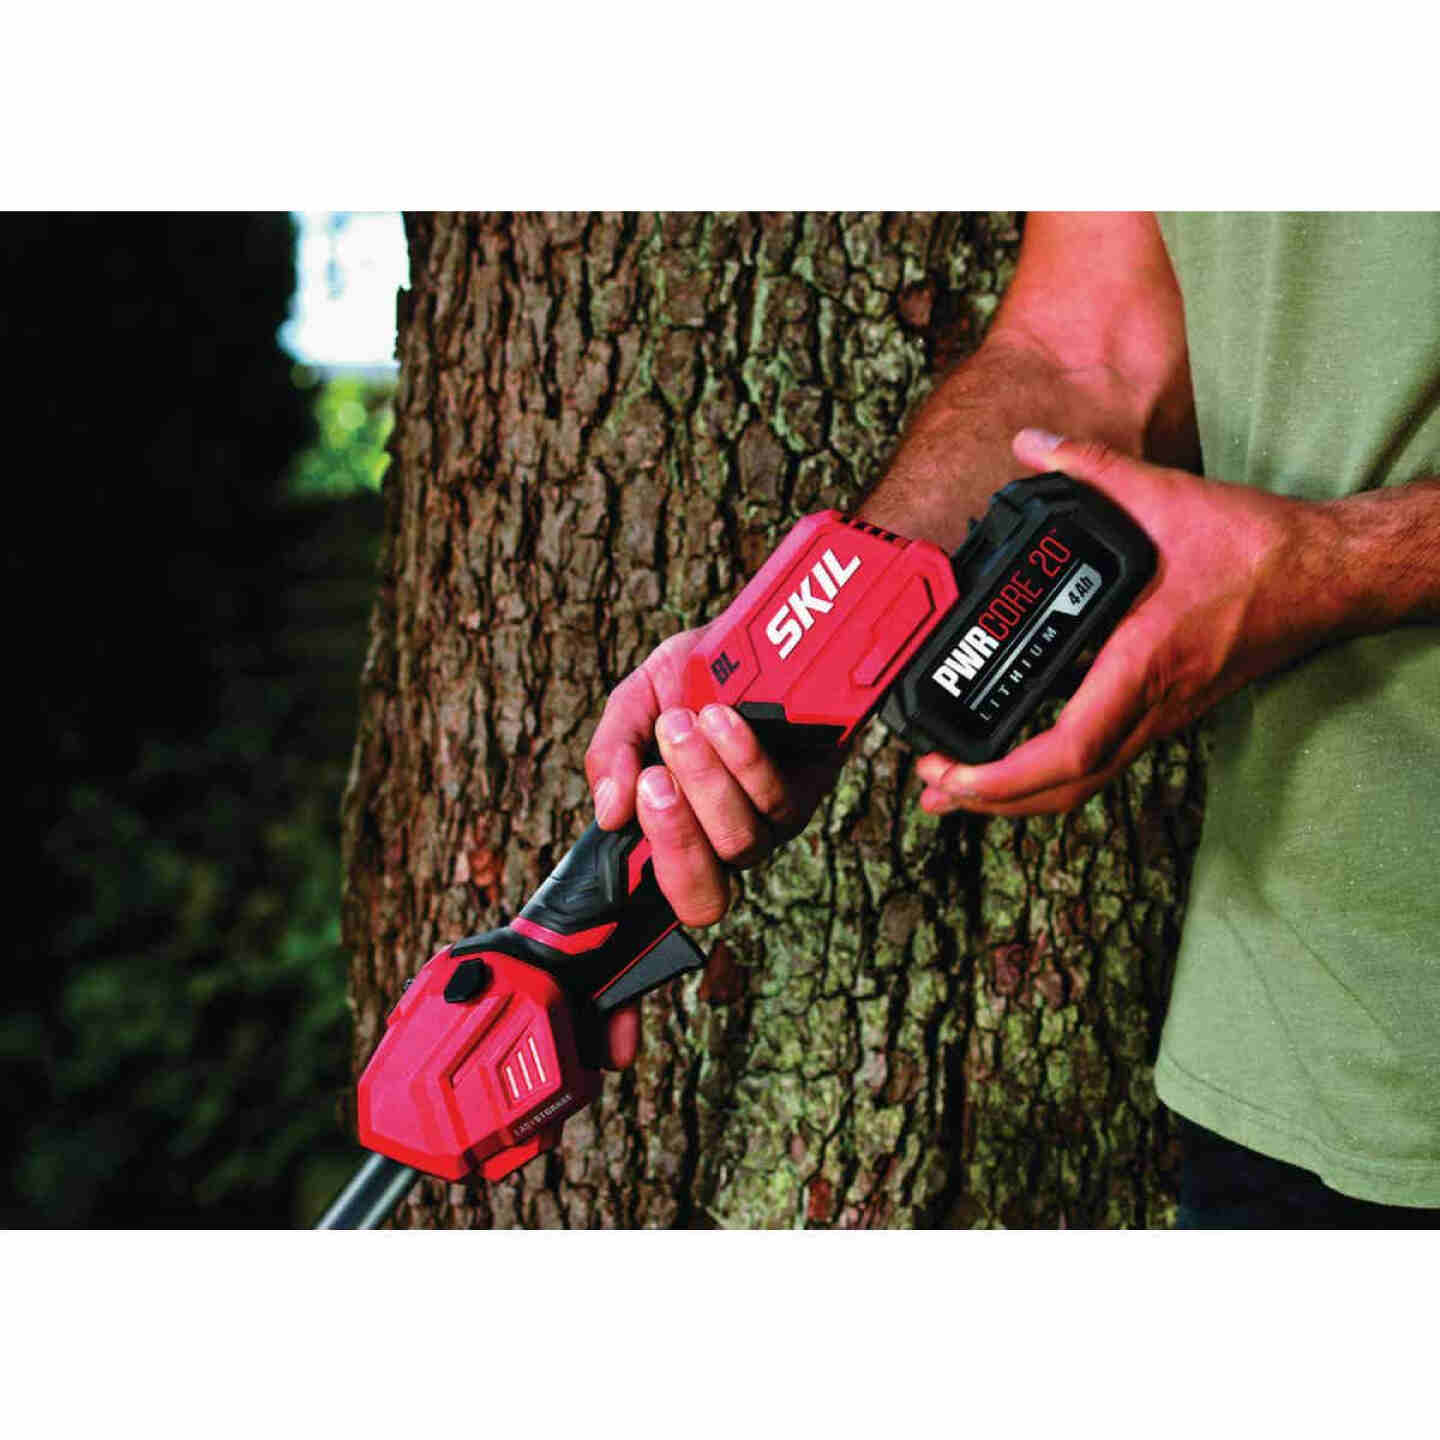 SKIL PWRCore 20V Brushless 13 In. Cordless String Trimmer Image 3